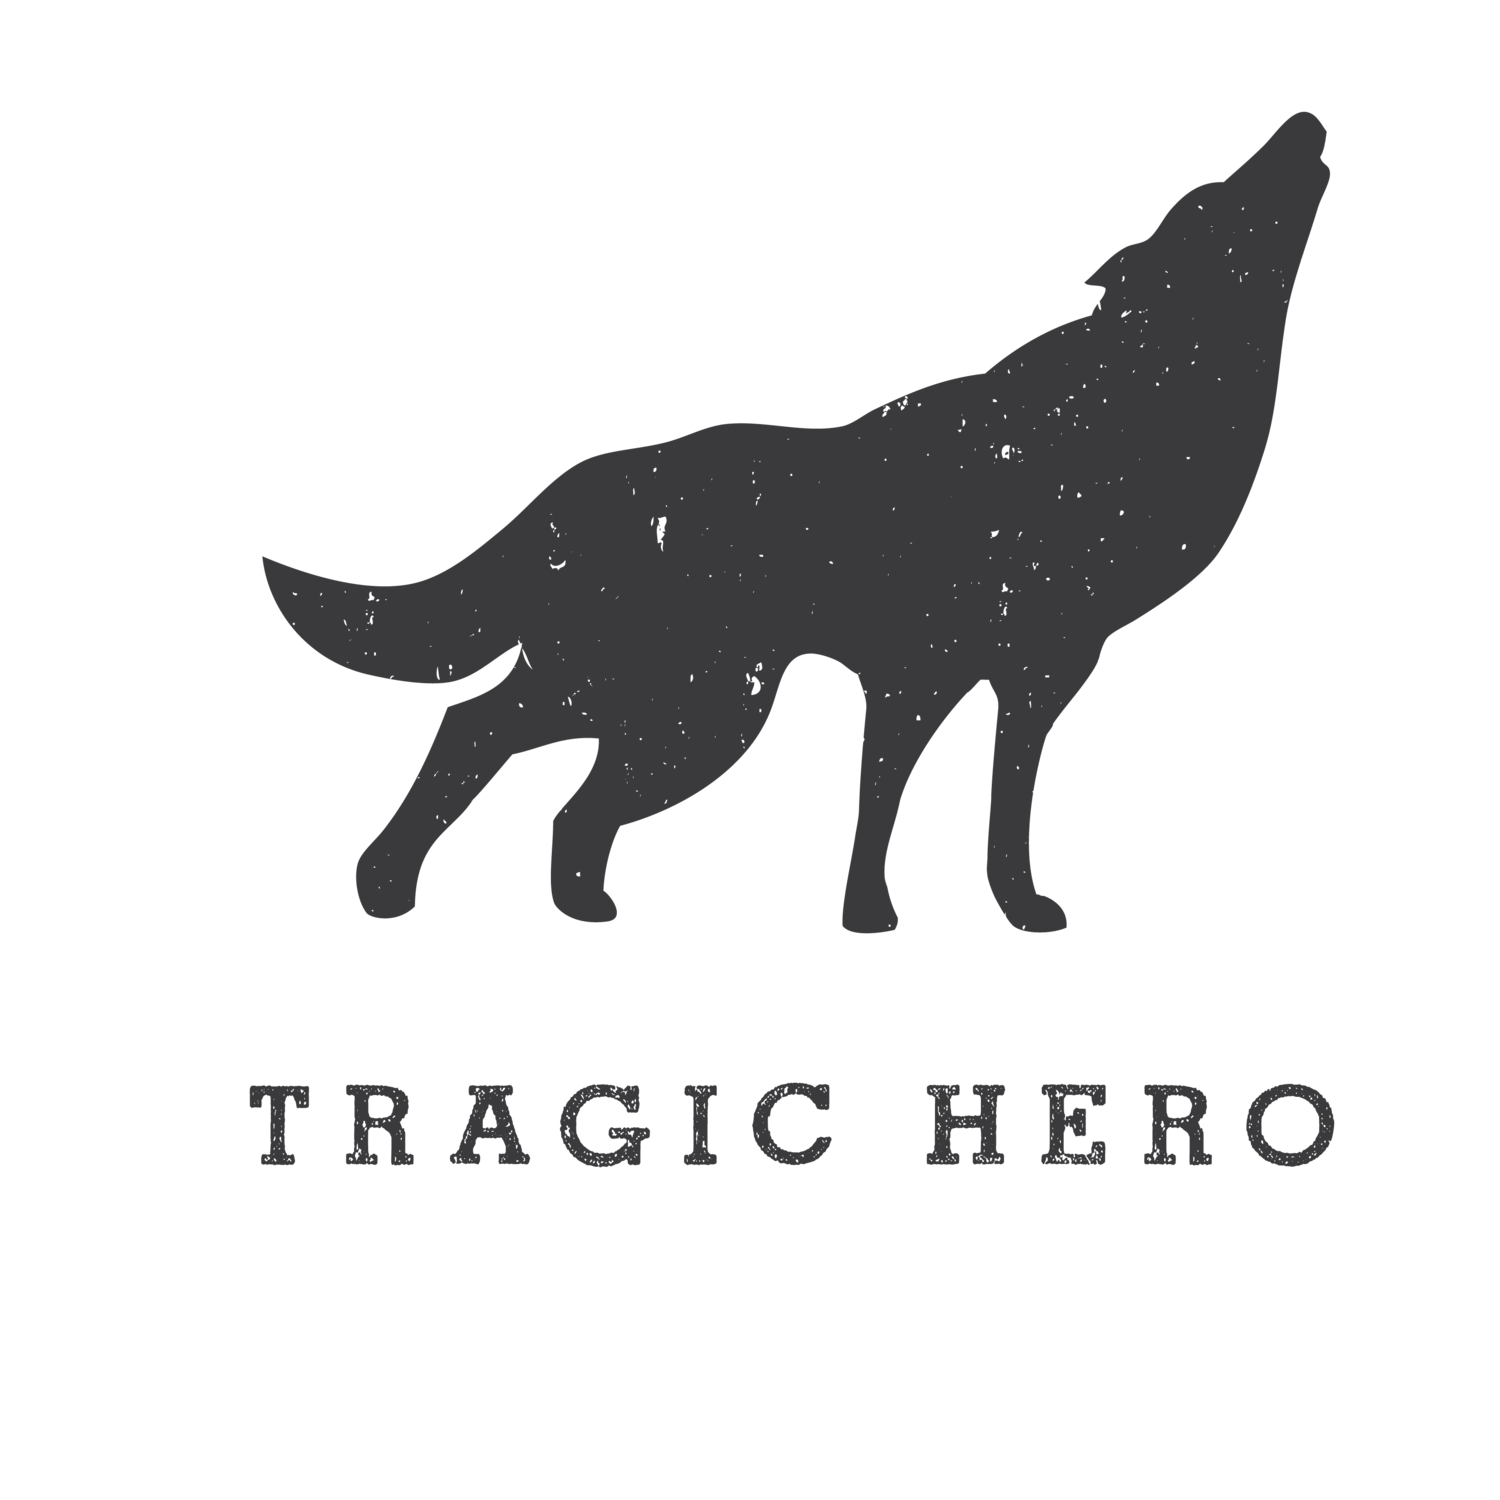 I Am Tragic Hero